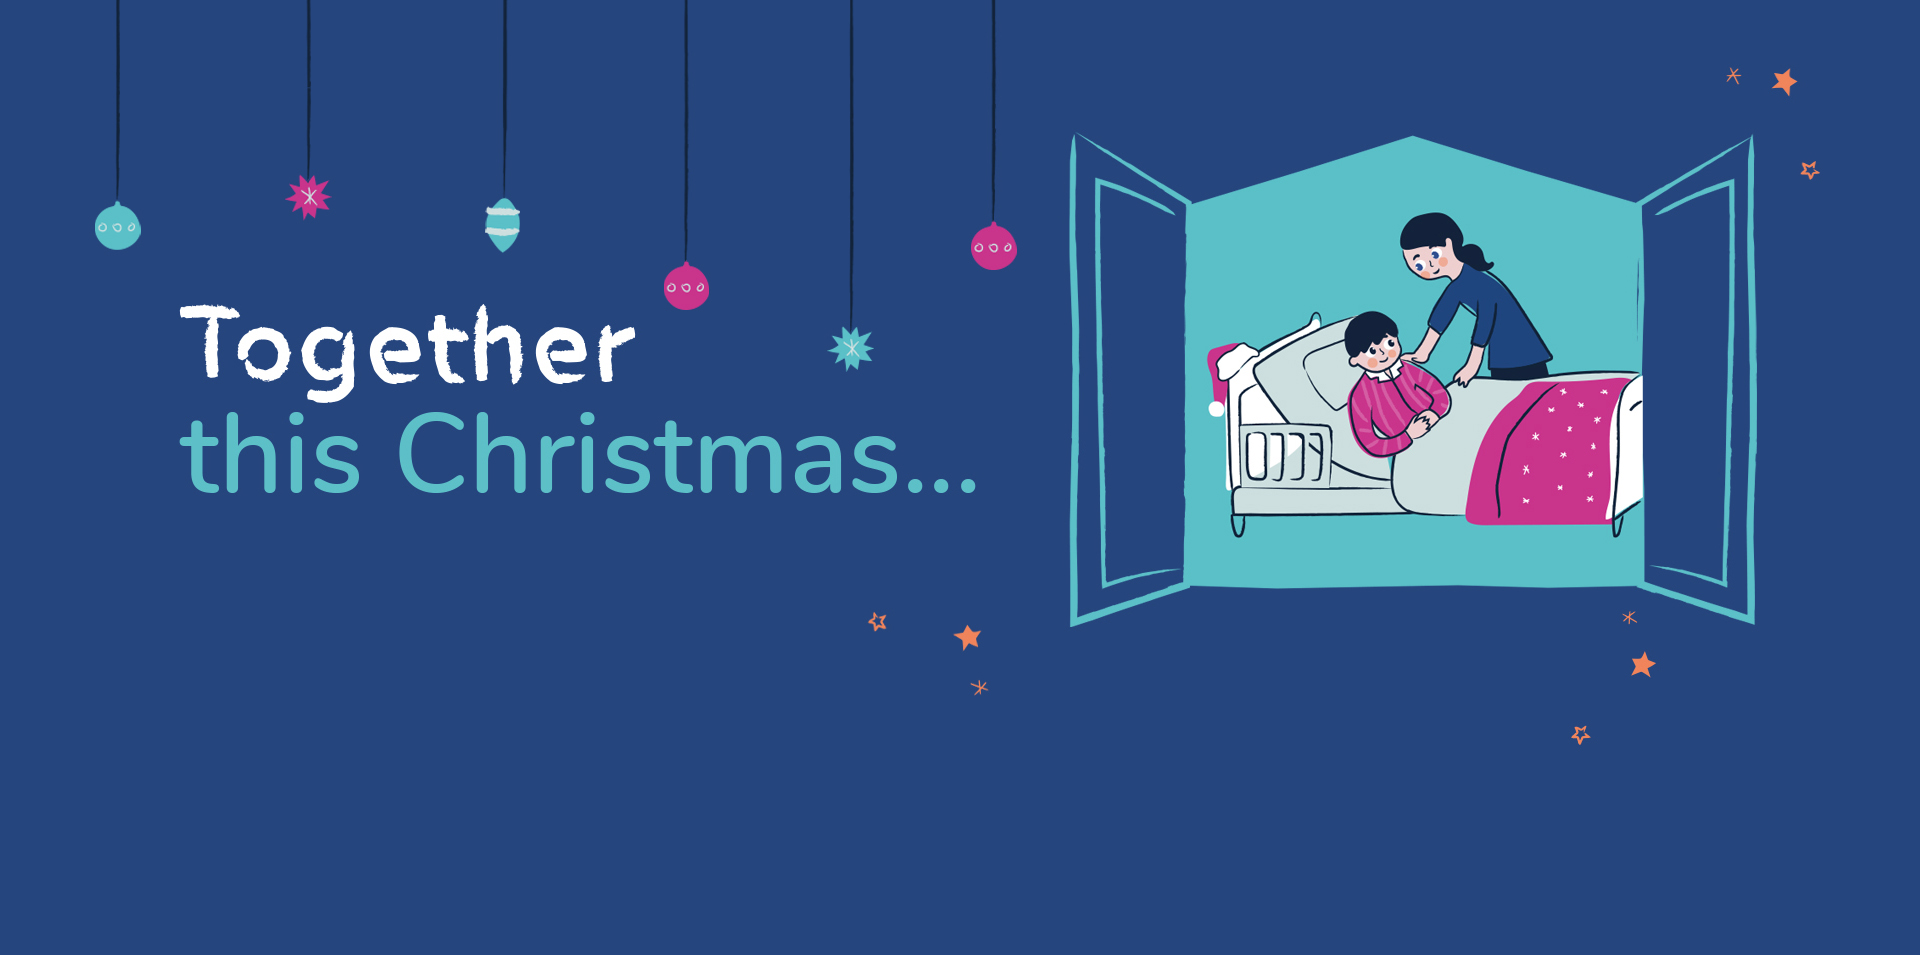 Our Christmas Appeal